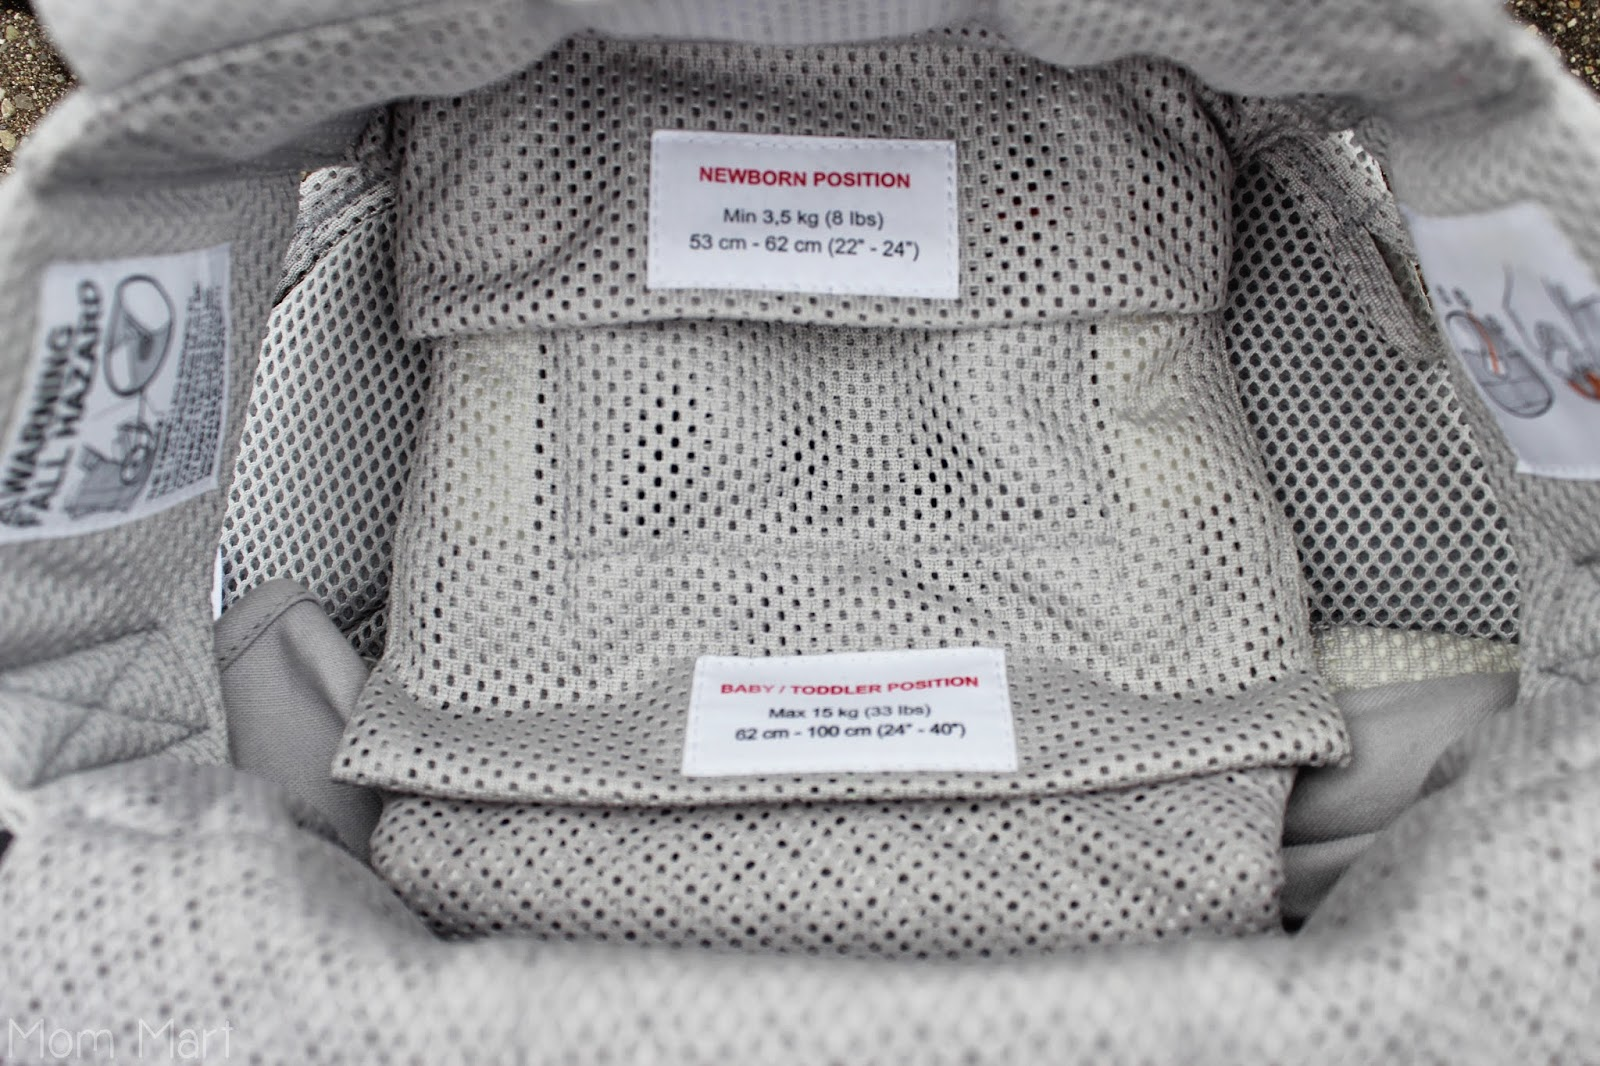 BABYBJÖRN Baby Carrier One in Silver Mesh #BabyWearing #BabyCarrierOne #OneIsAllYouNeed newborn and toddler positions